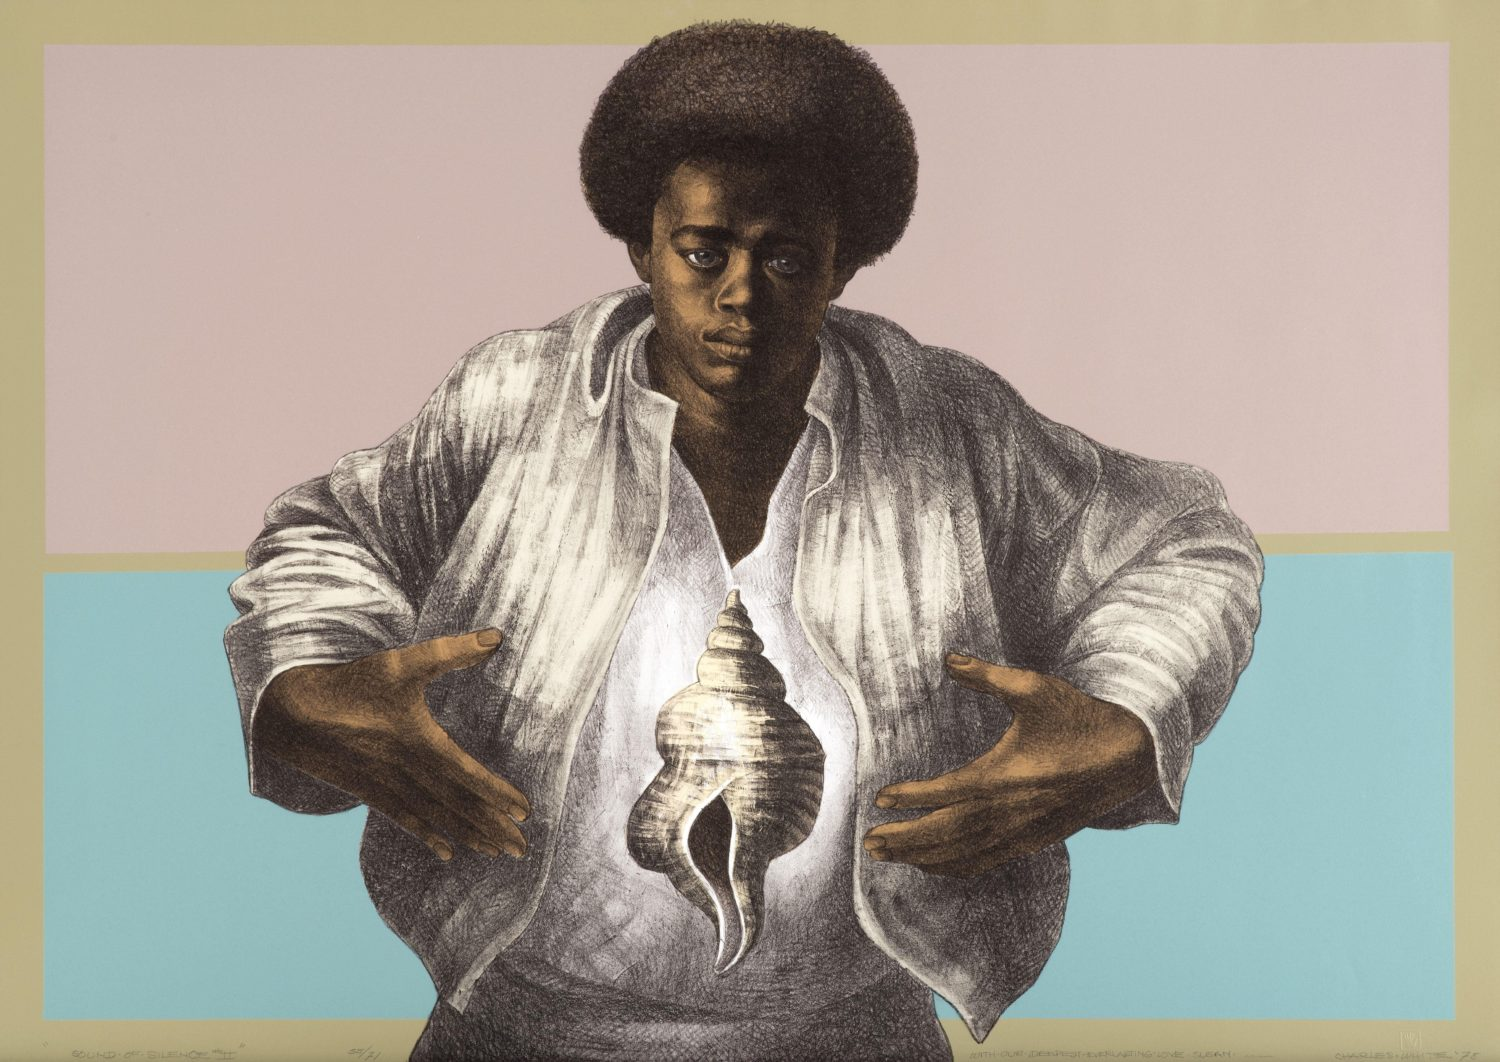 """Image of a color painting, titled """"Sound of Silence"""" by Charles White, featuring a man in a white shirt and a conch shell"""